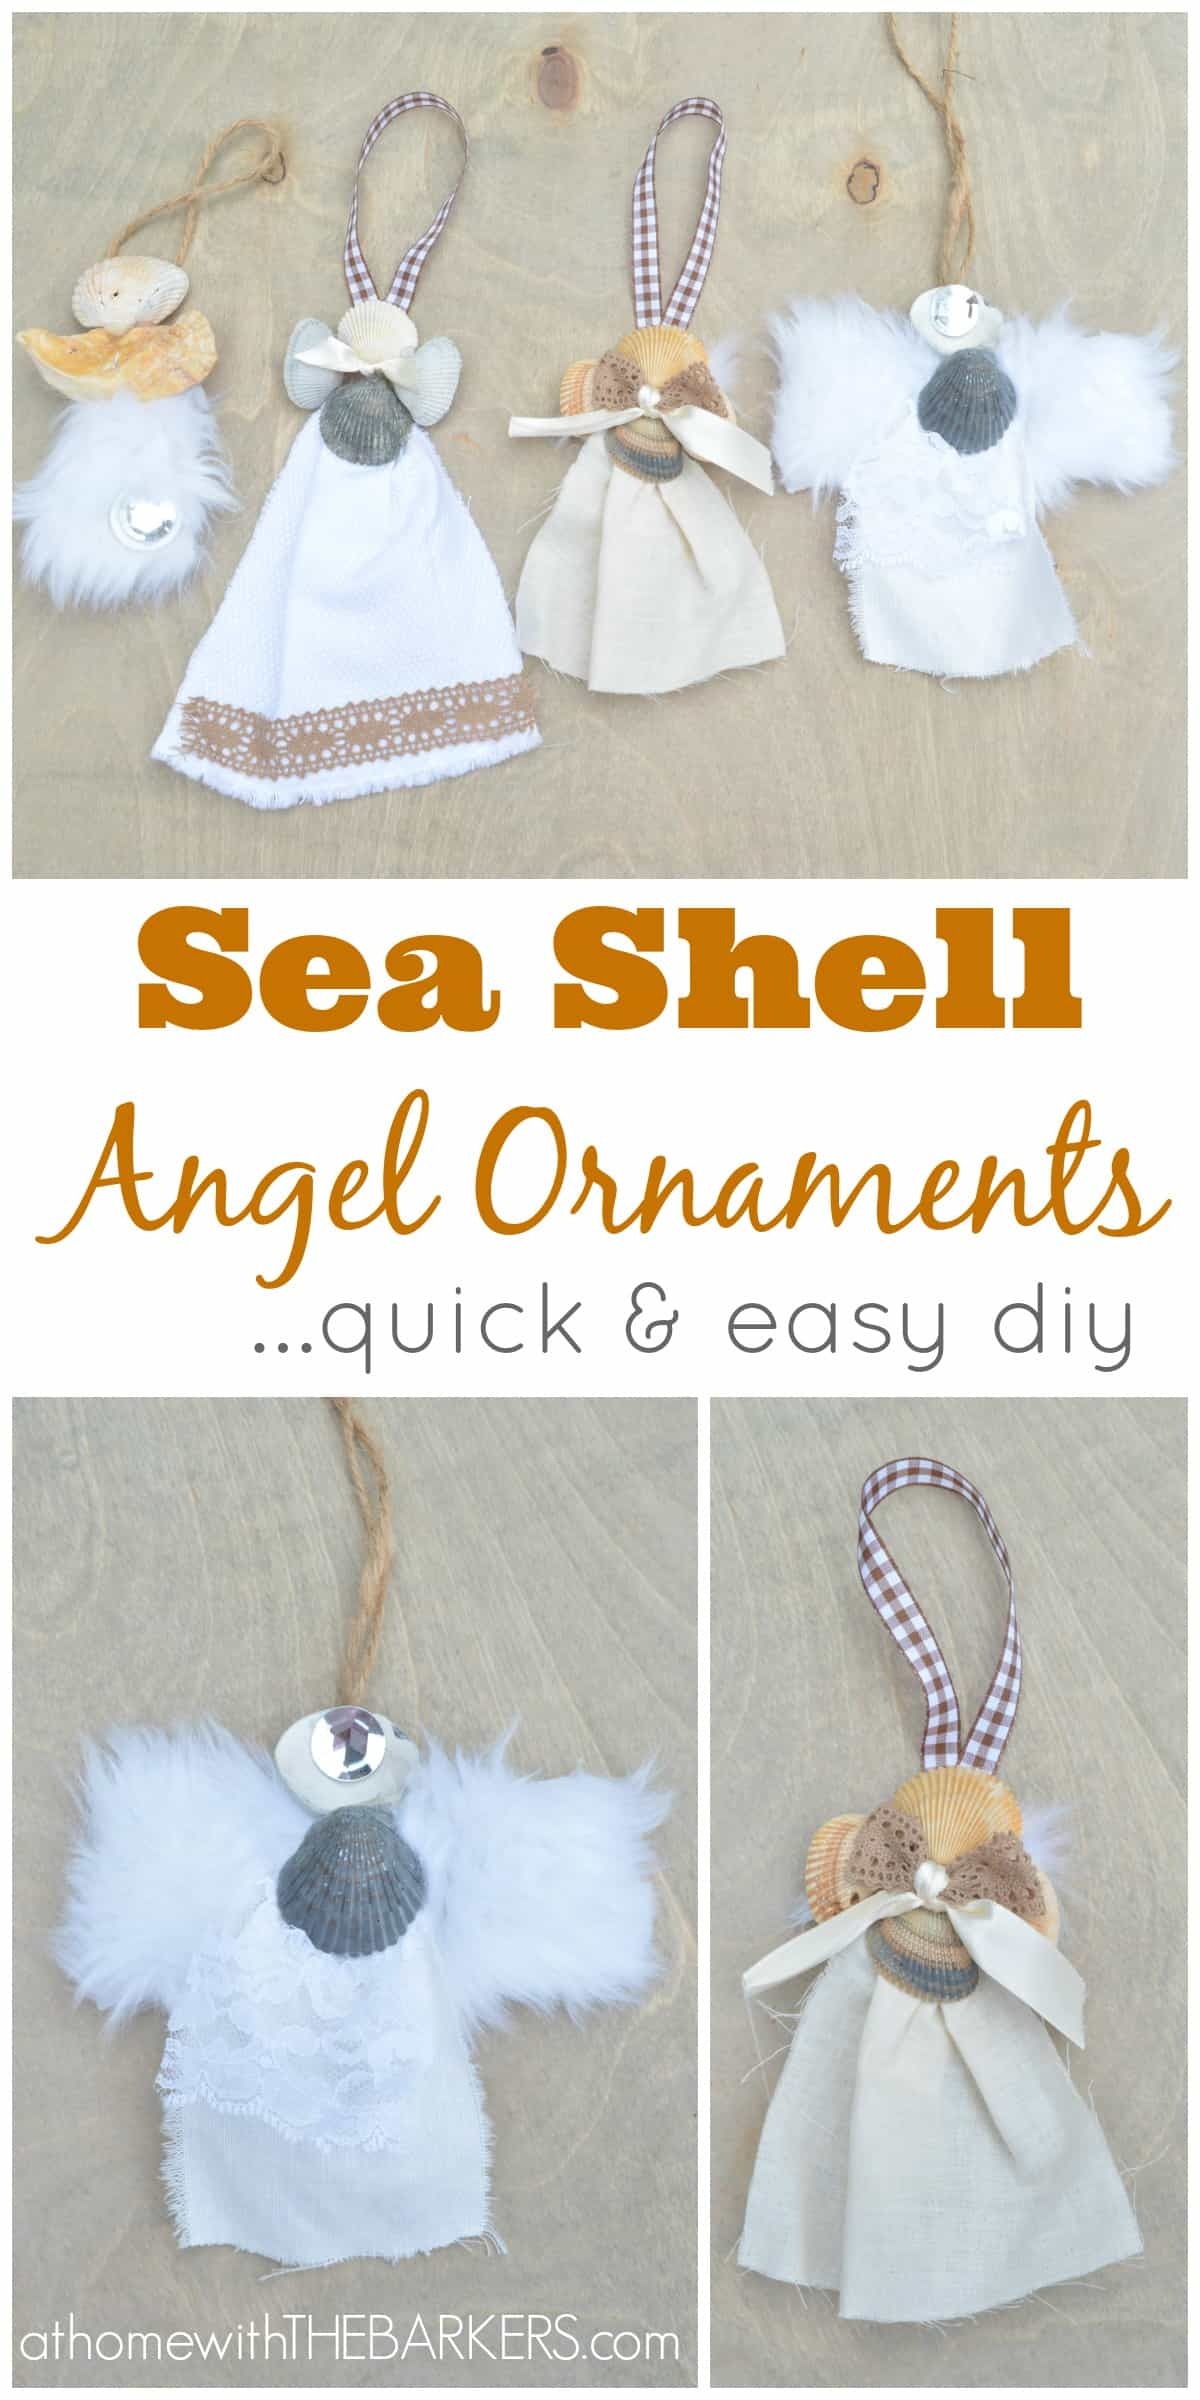 Sea Shell Angel Ornaments {or gift accessory}